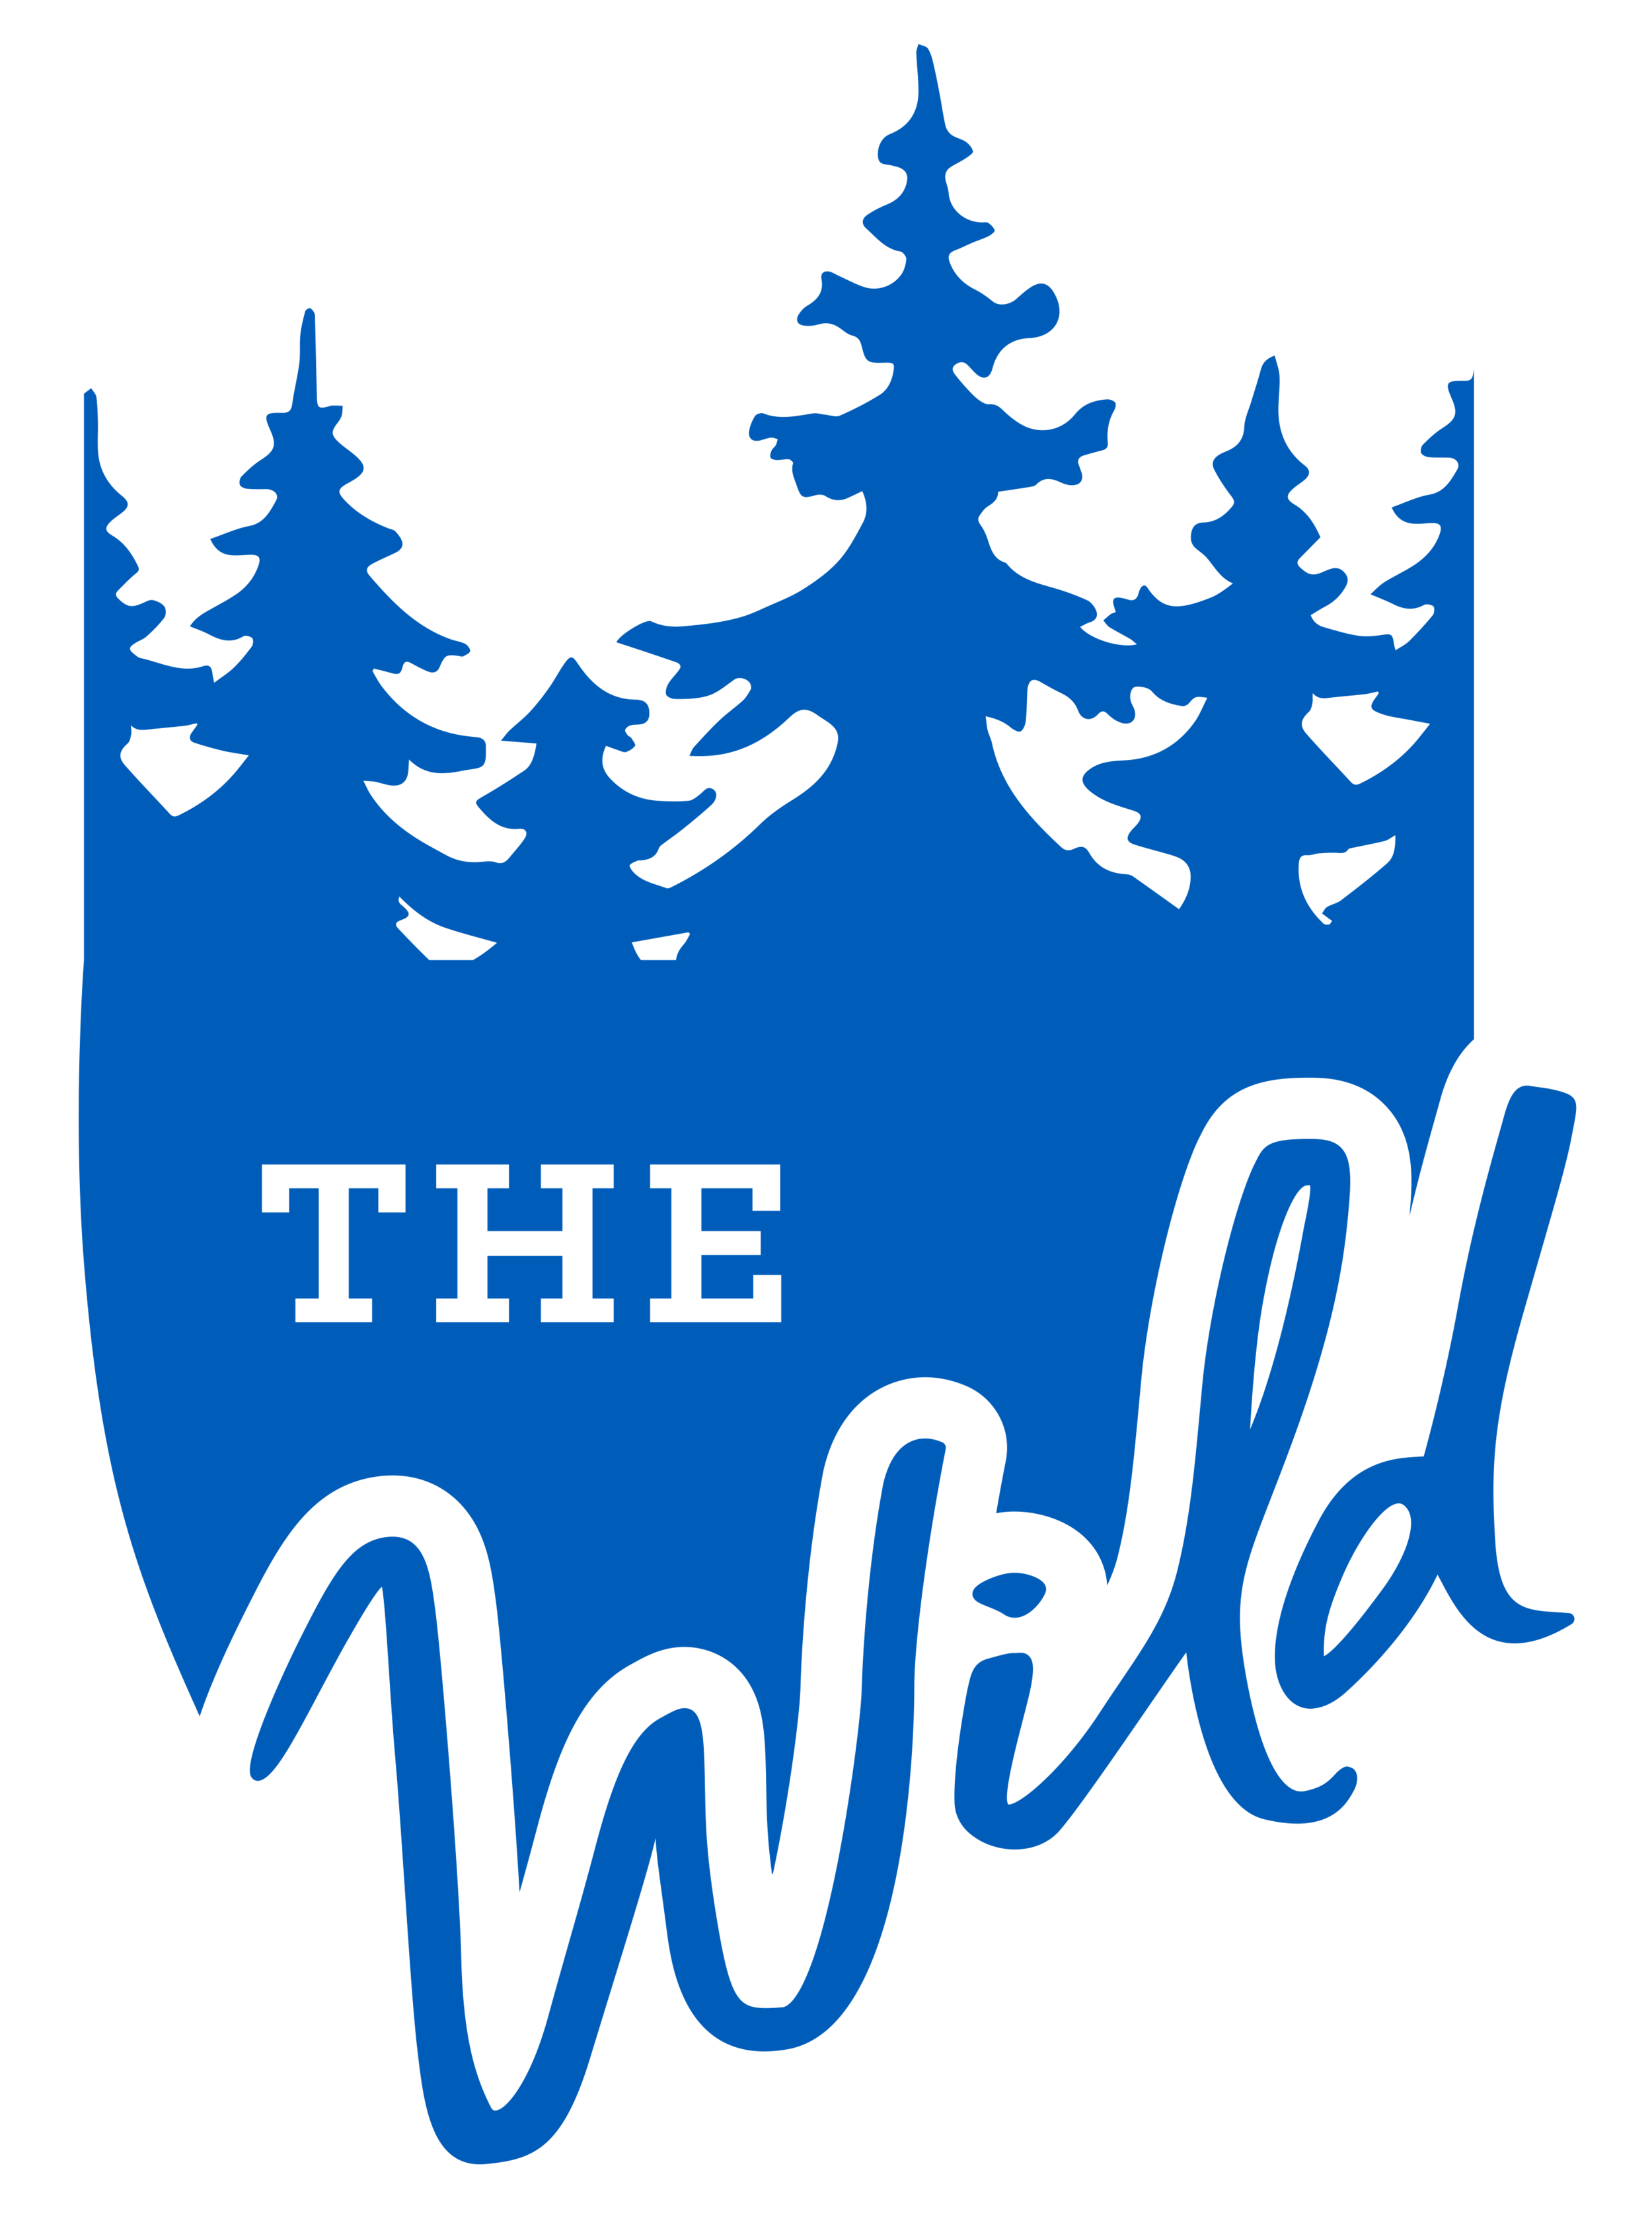 The Wild, Woodstock Trinity School's athletic team, a Private Independent Elementary School in Innerkip Ontario Canada.